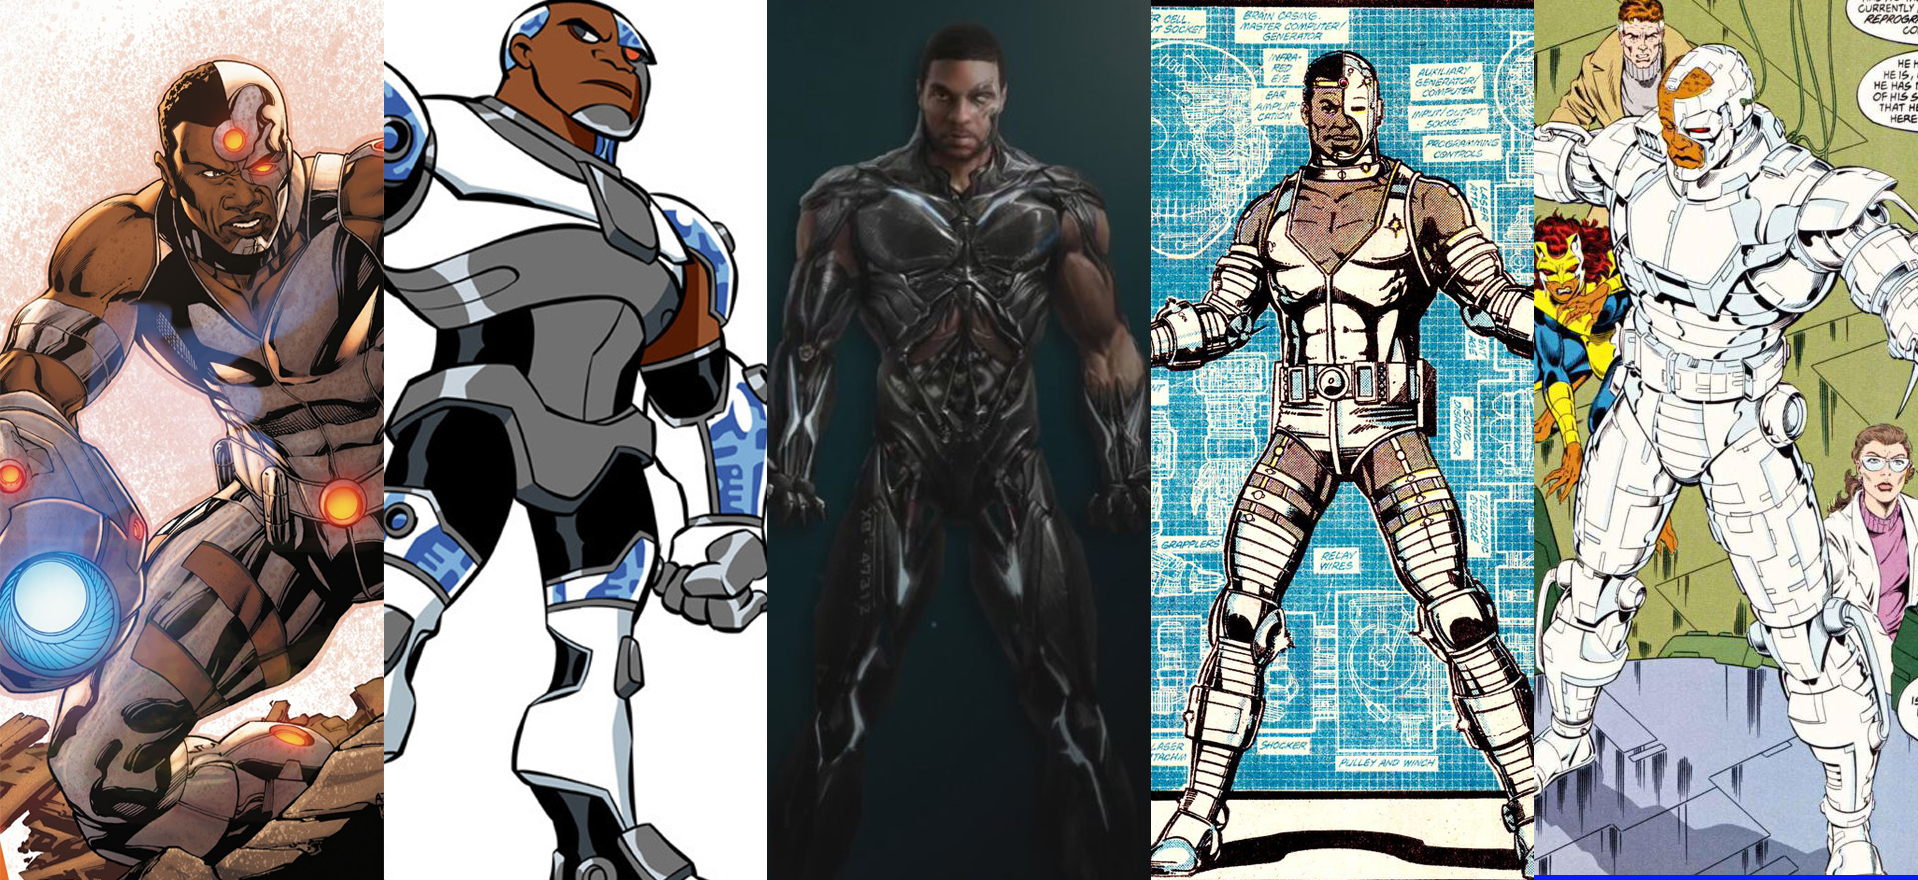 Cyborg Rankings